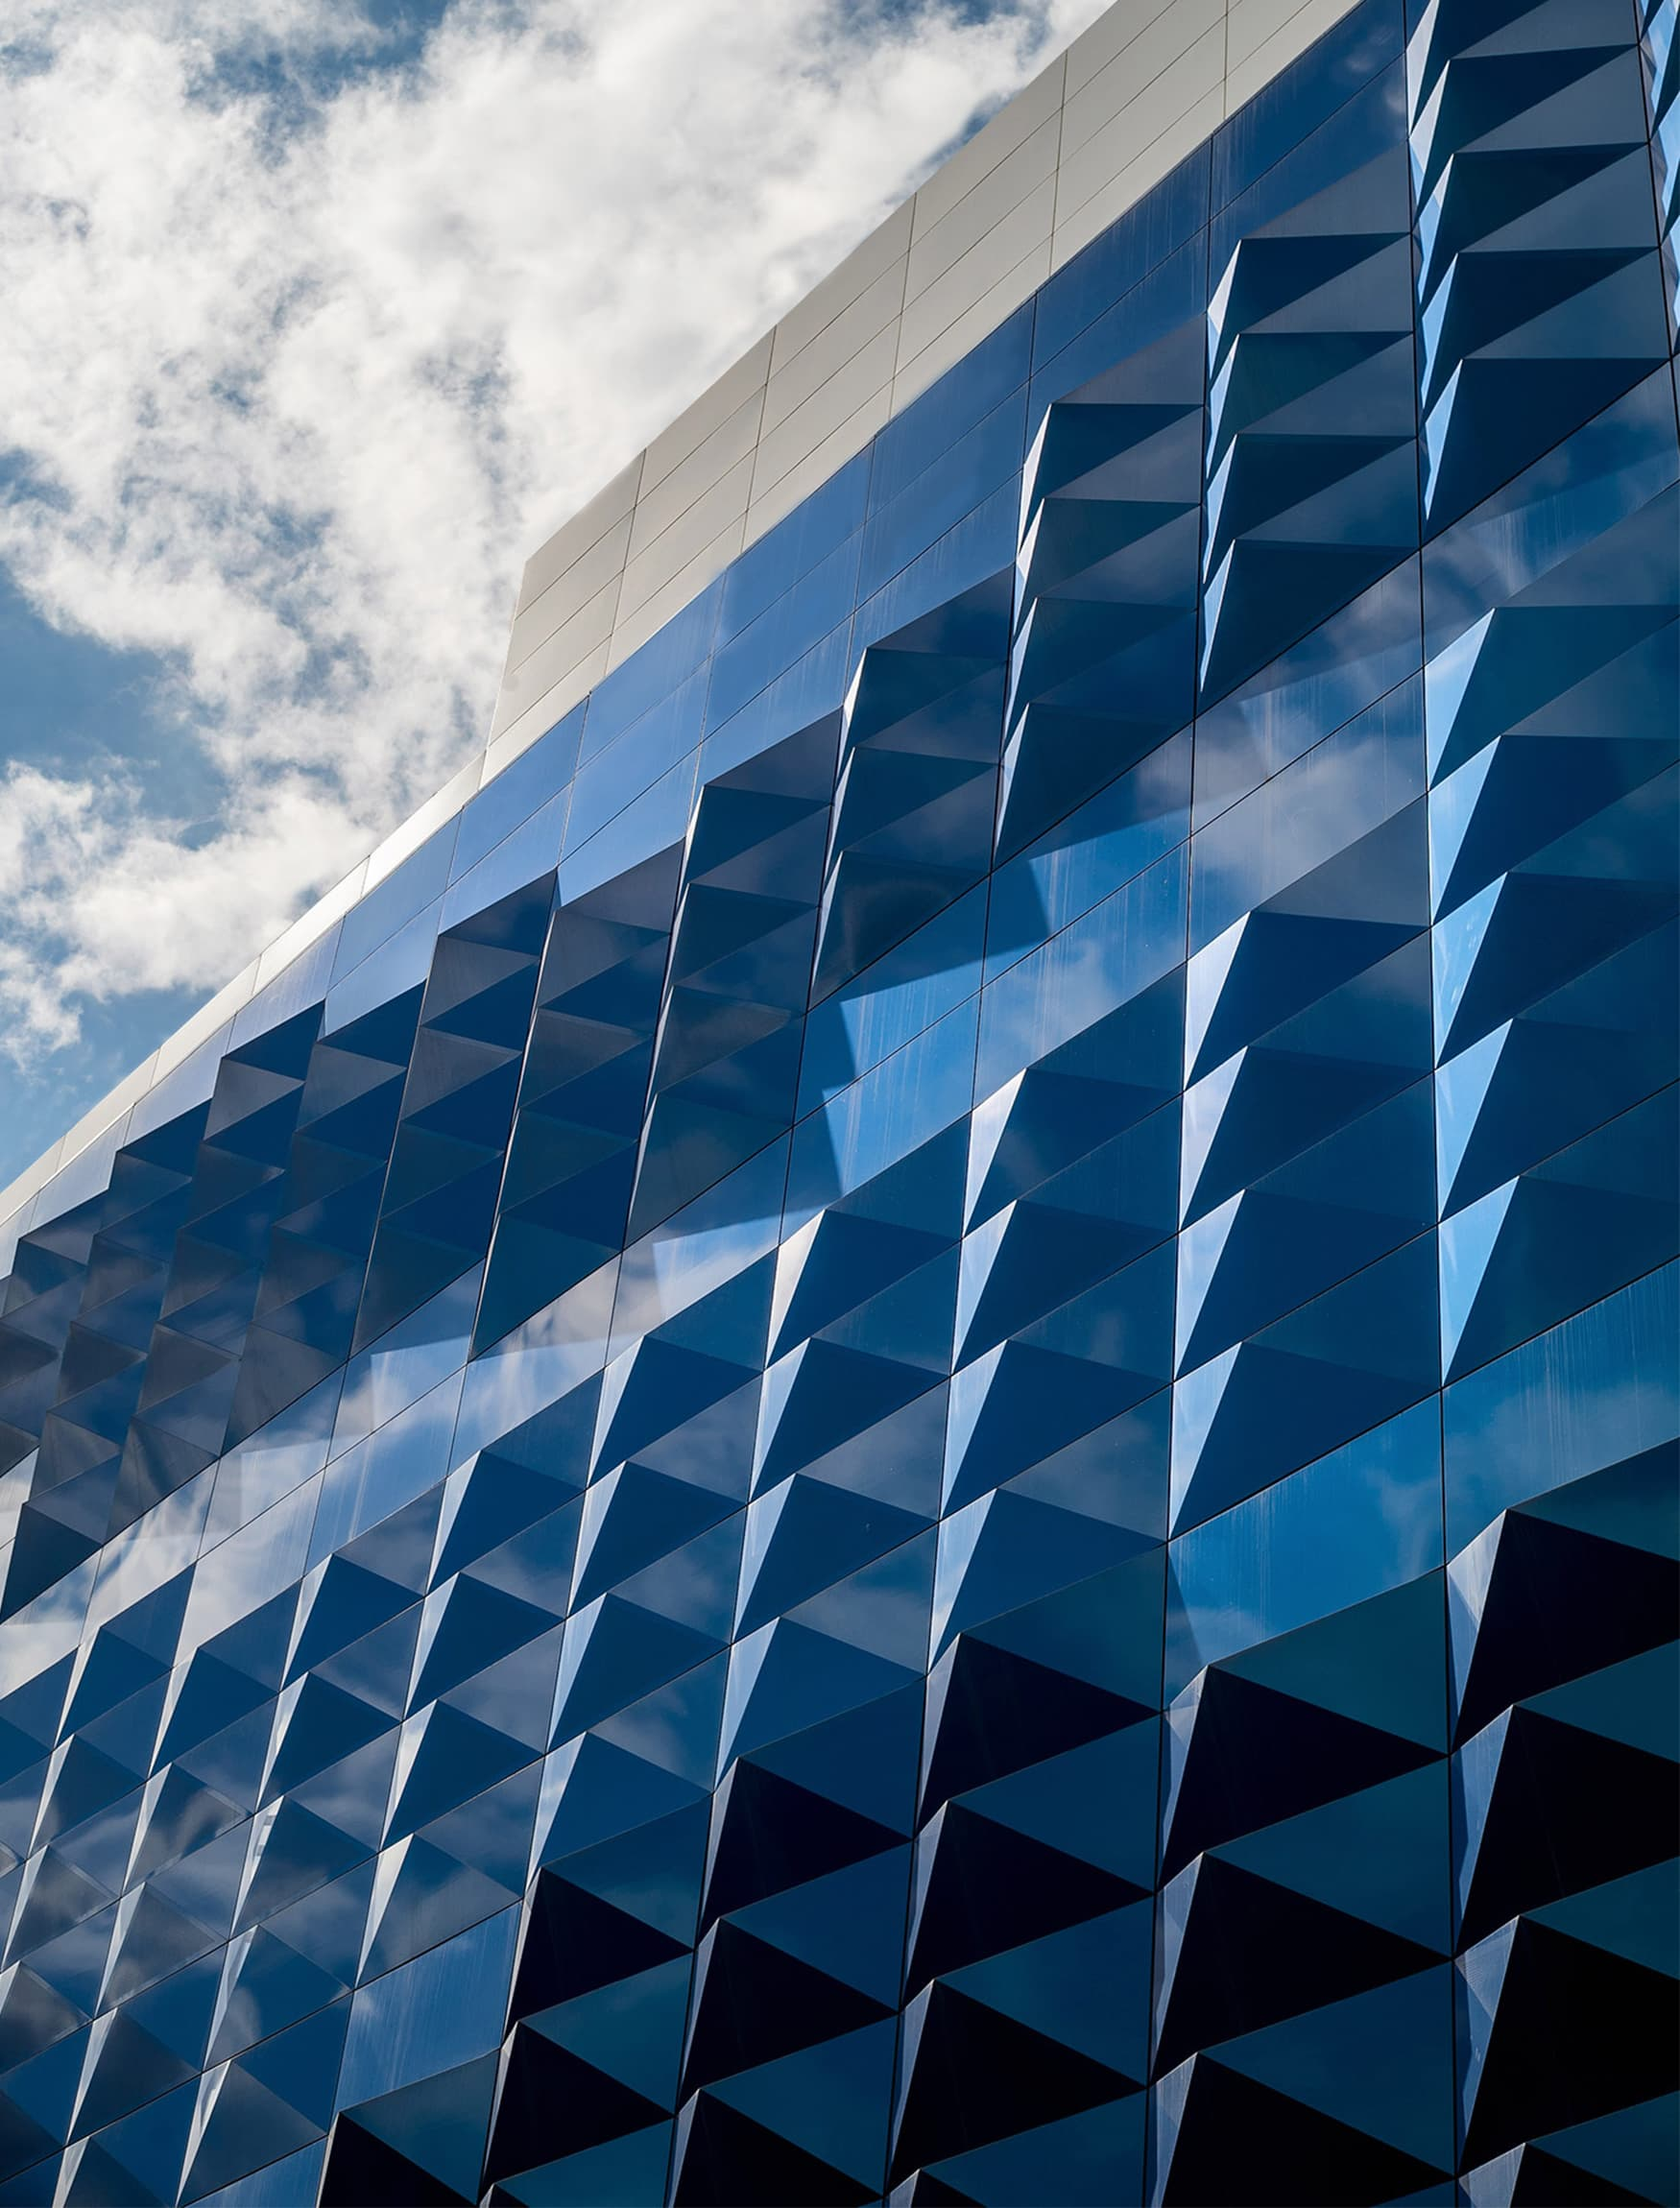 Moscow Riviera architectural geometric facade